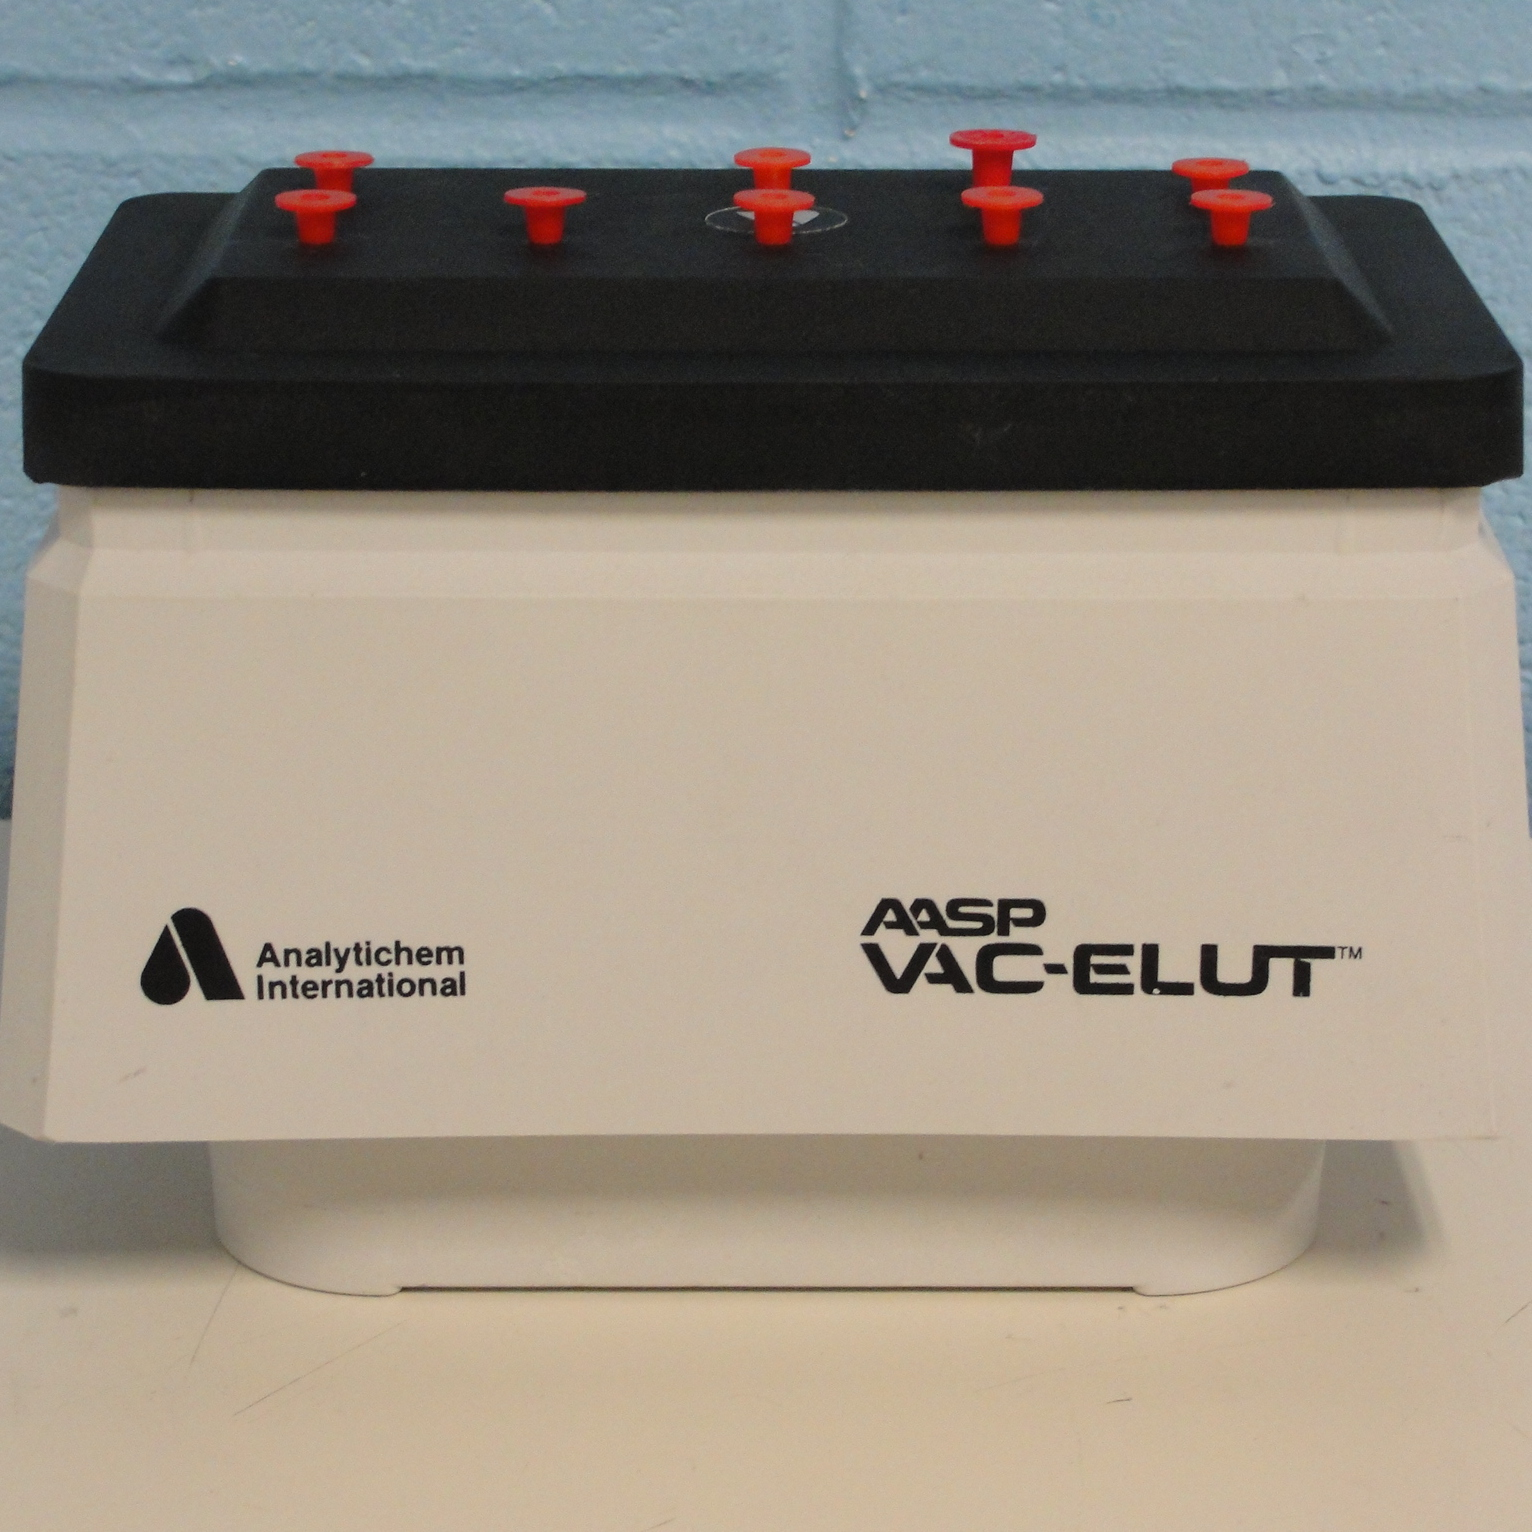 Analytichem International AASP Vac-Elut. Model AI 6000 Image